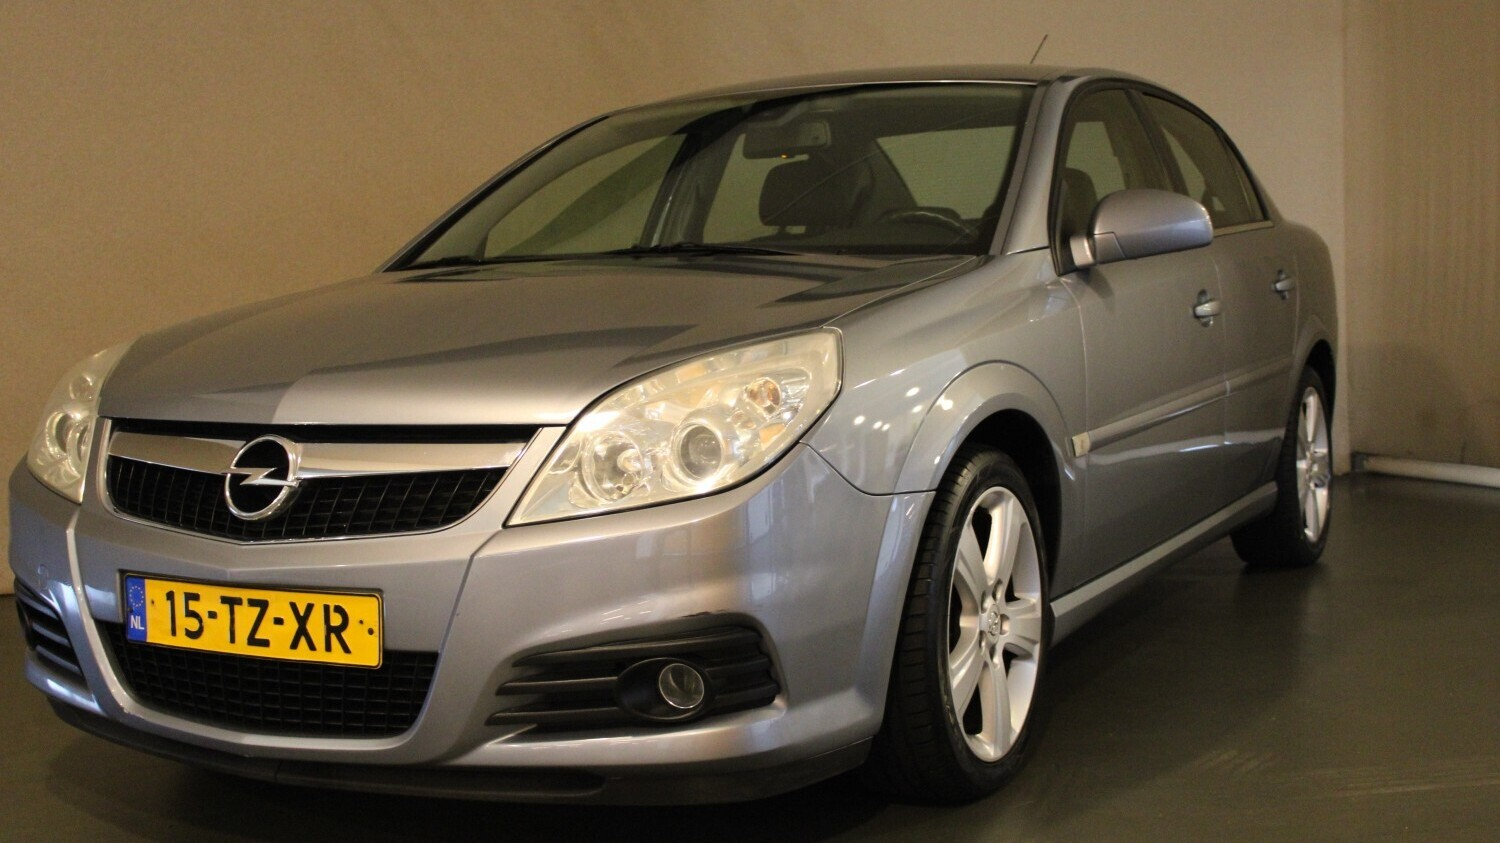 Opel Vectra Sedan 2007 15-TZ-XR 1